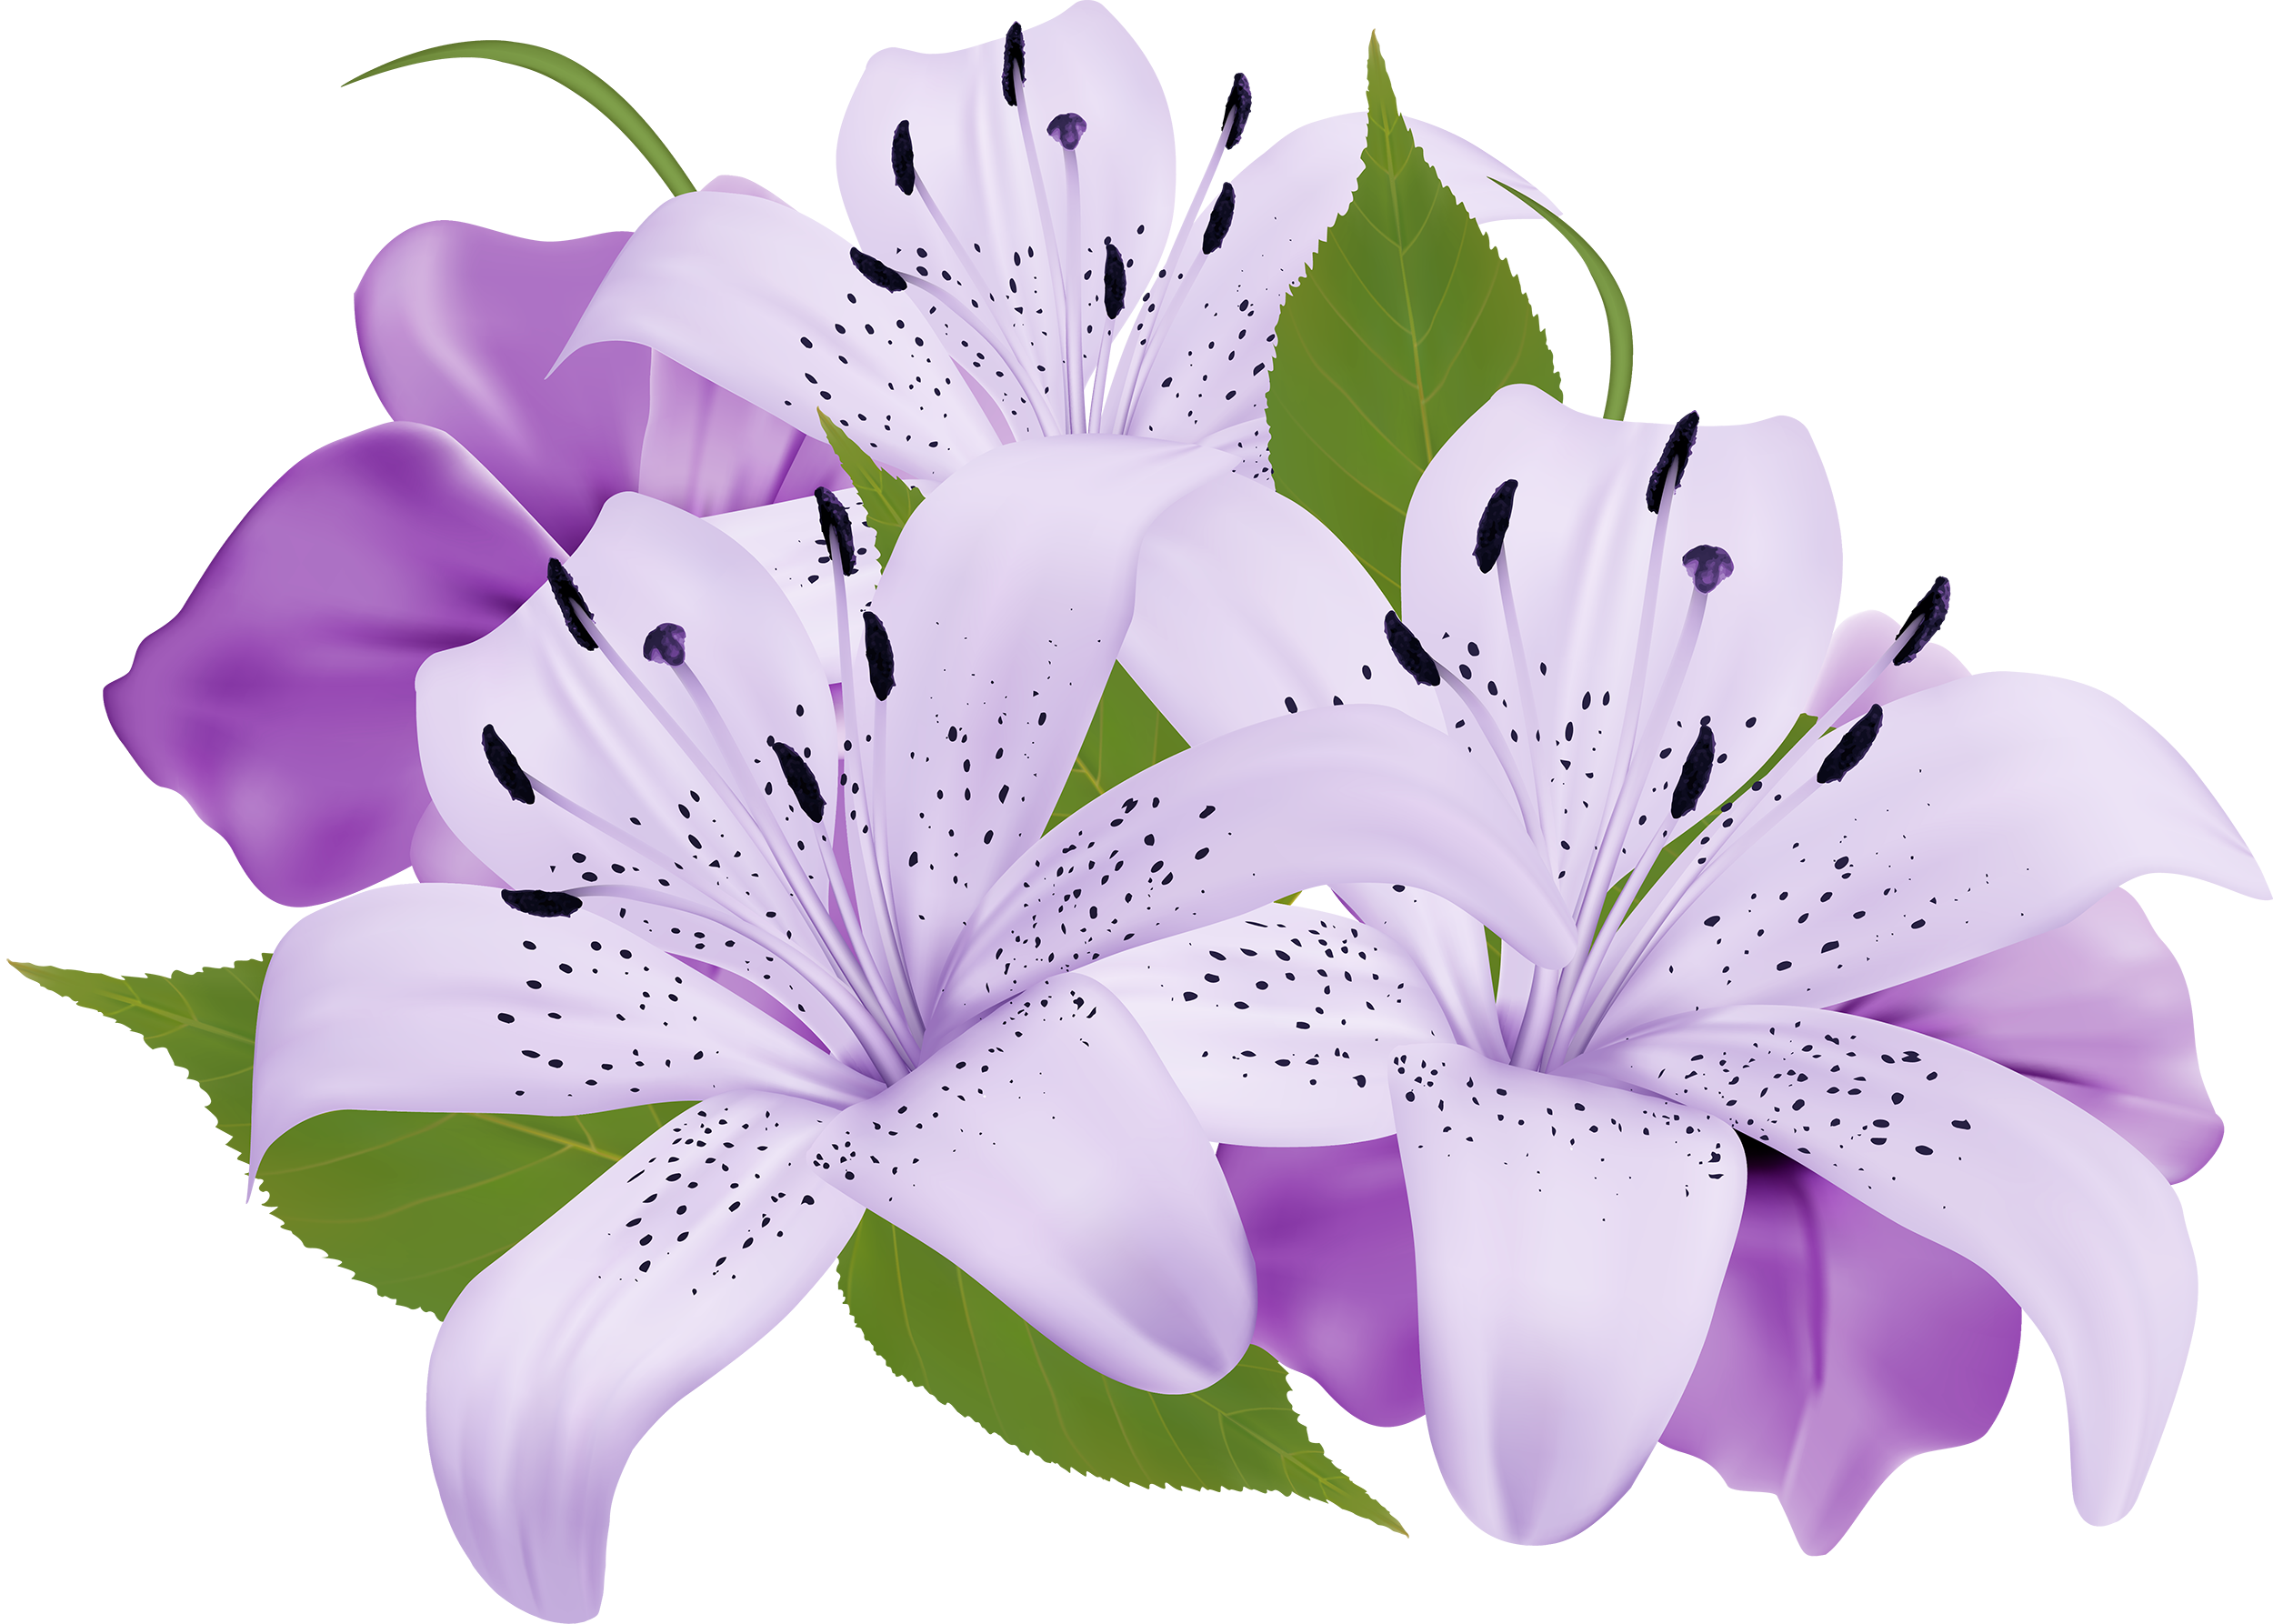 Purple flower png. Decorative flowers clipart best